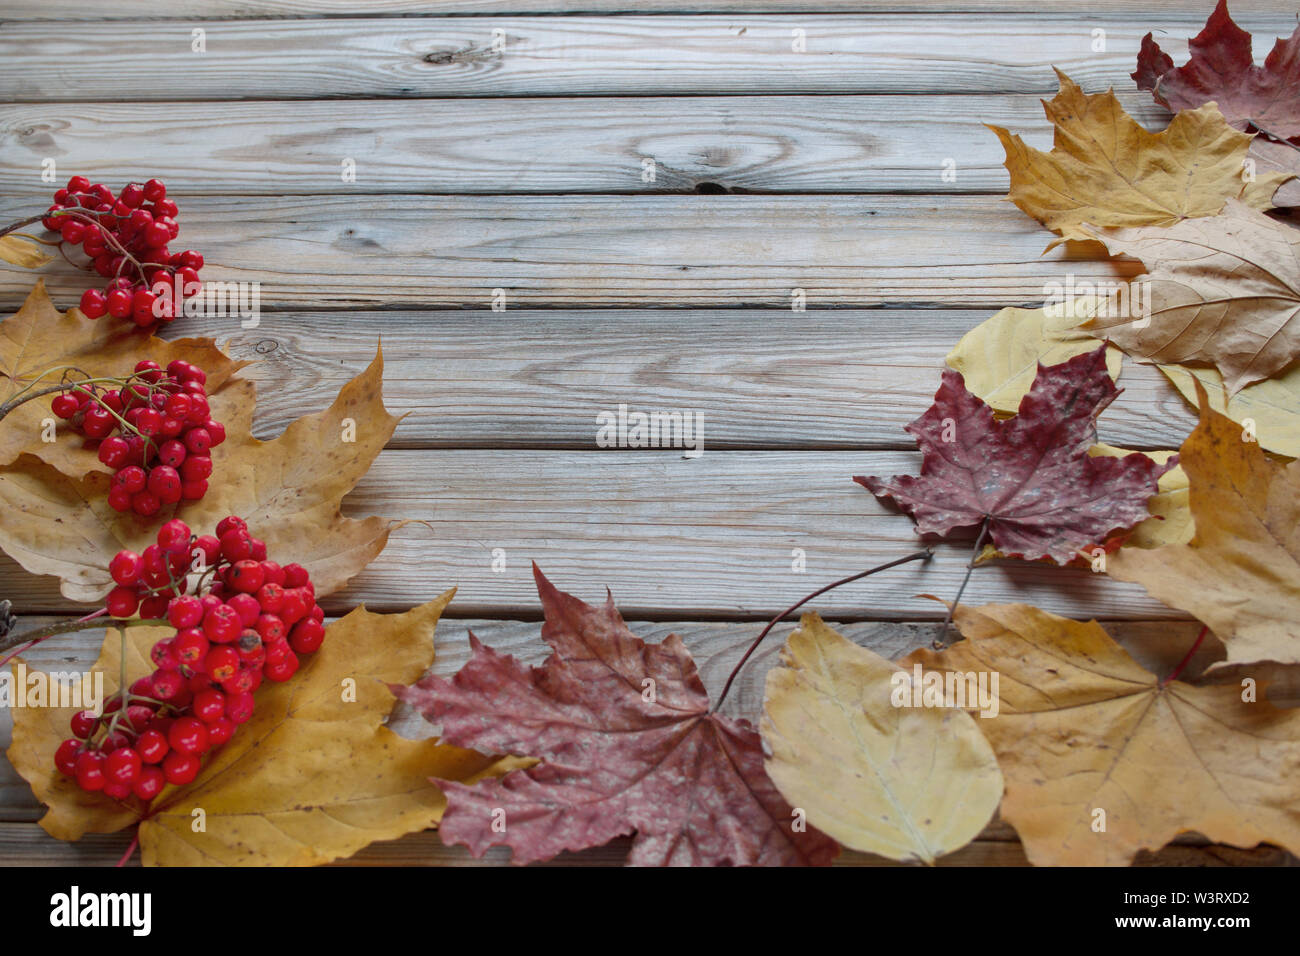 Branches of rowan tree and dry autumn leaves are lying on a wooden desk. Autumn still life. Copy space for your text. - Stock Image